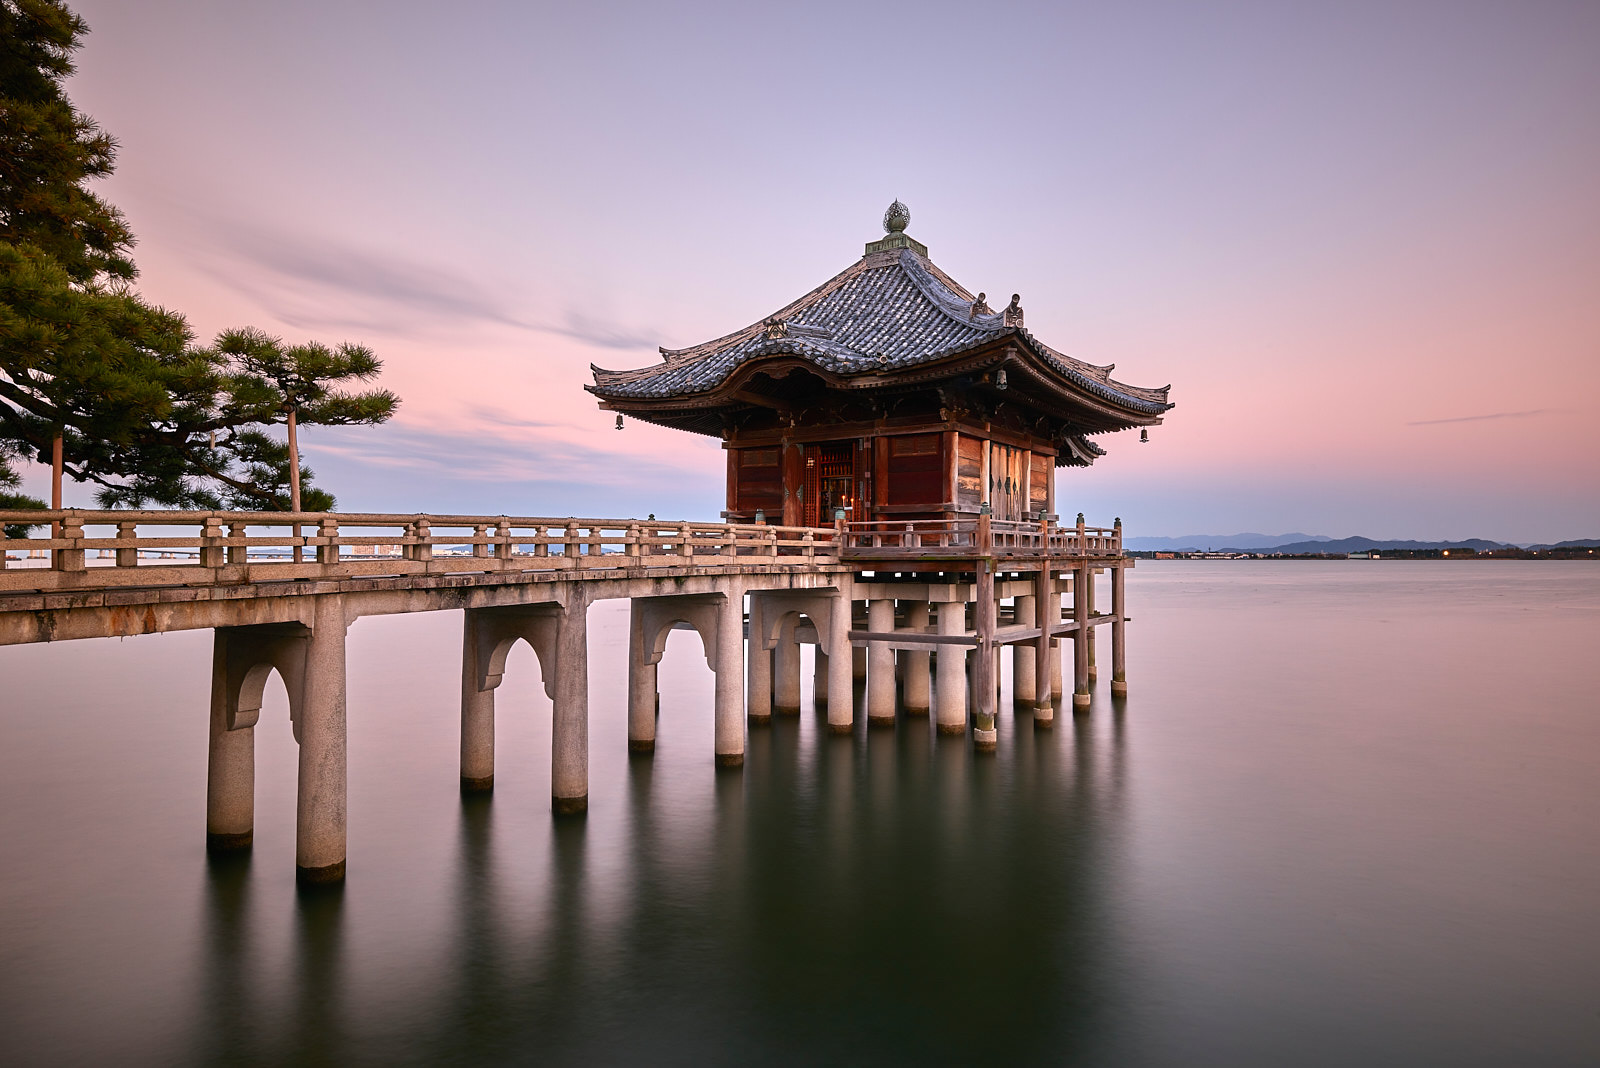 a long exposure of a floating temple with a bridge going out to at Ukimodo temple in Kyoto, Japan